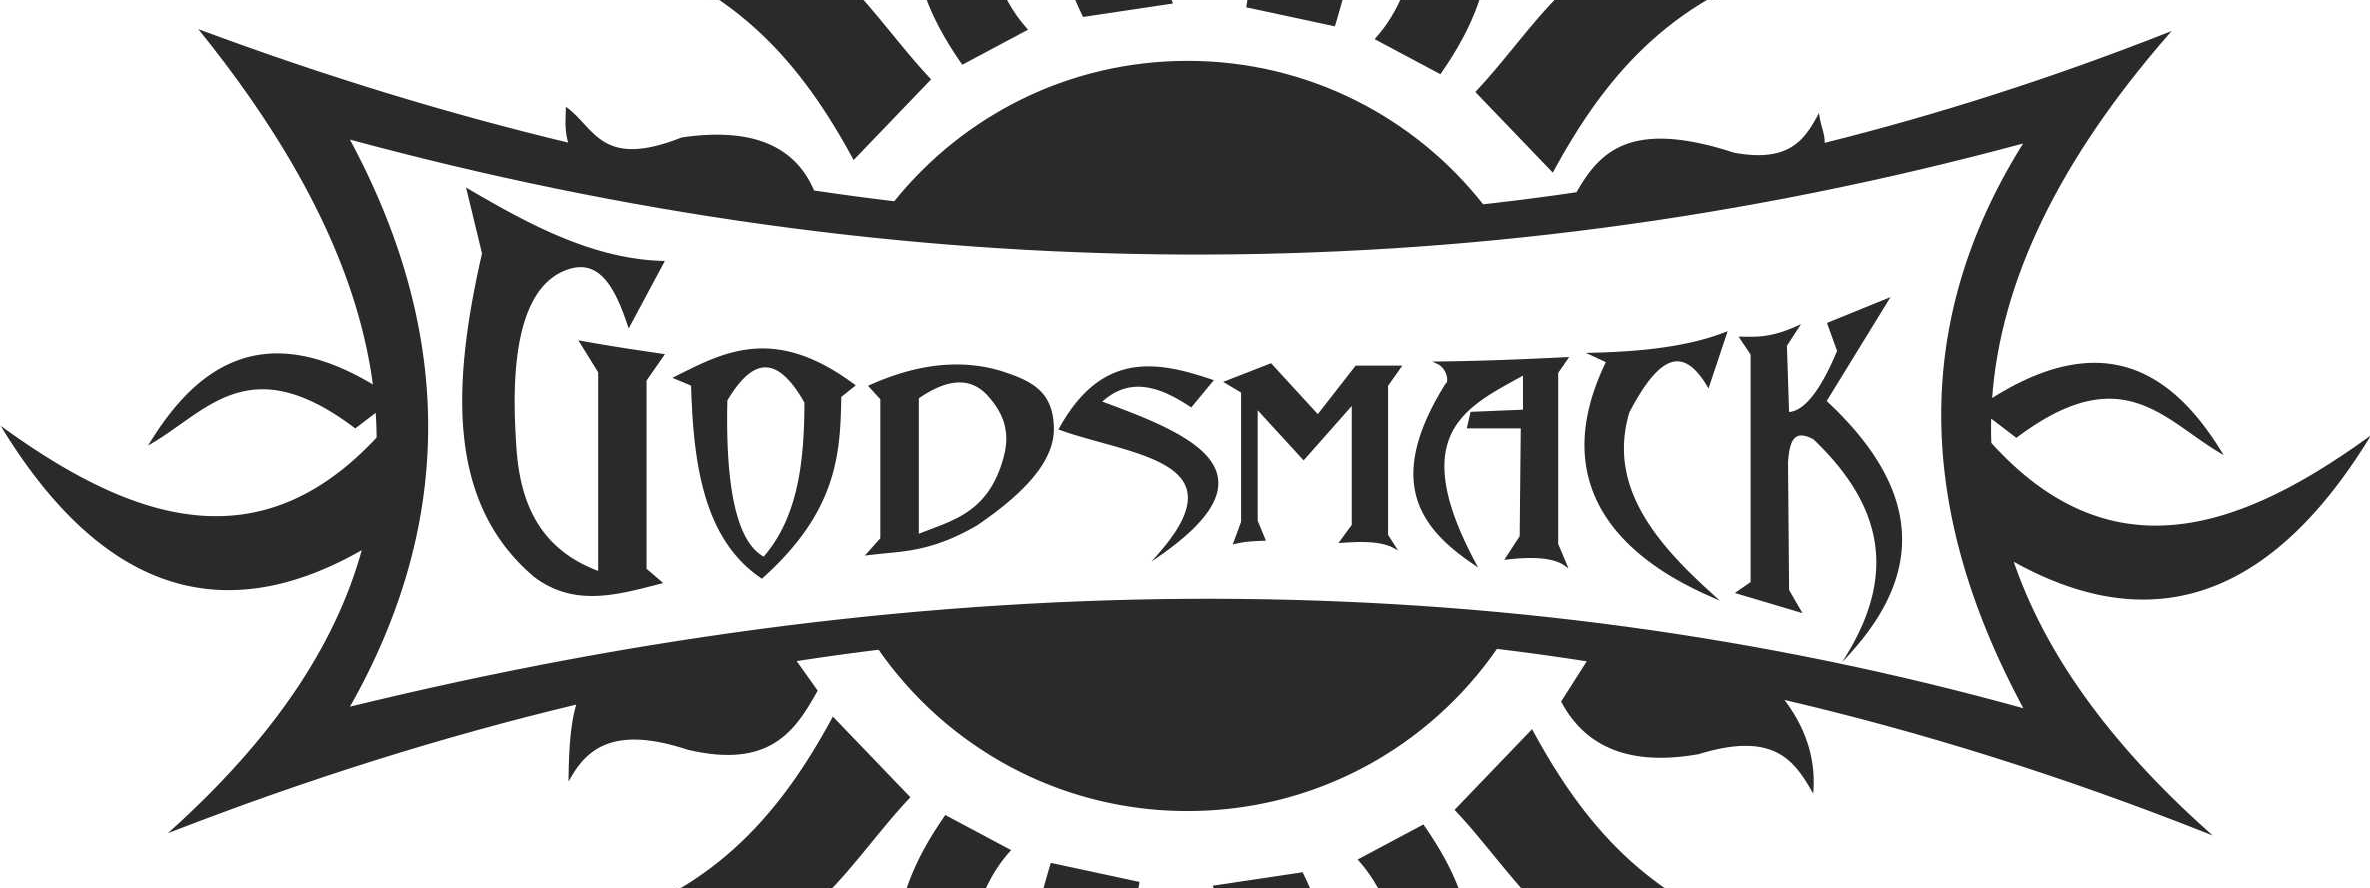 Song A Day Cover Week Godsmack Come Together